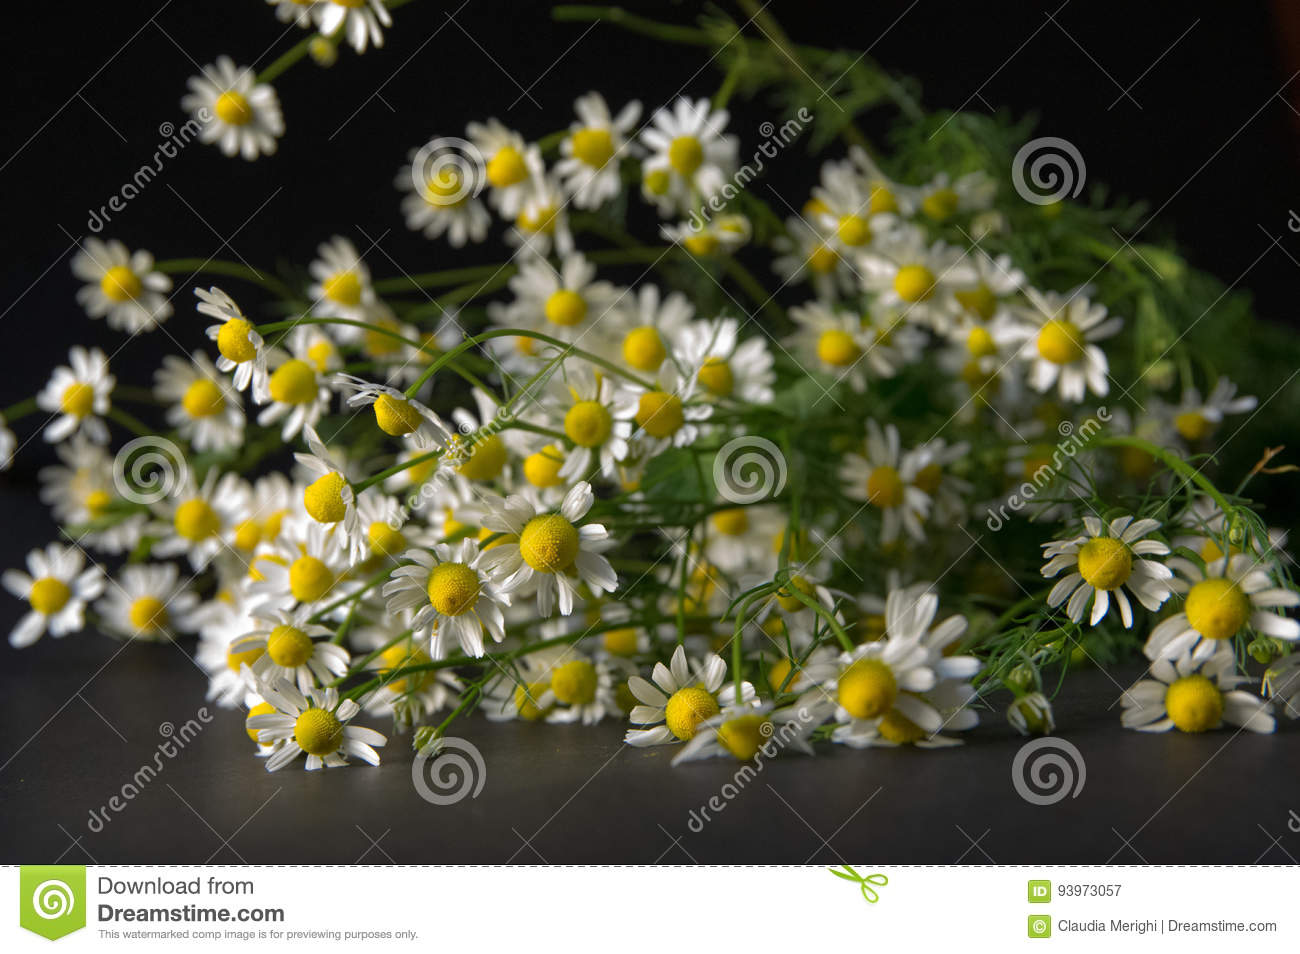 Chamomile or camomile stock image image of herbal infusions 93973057 chamomile is the common name for several daisy like plants of the family asteraceae that are commonly used to make herb infusions to serve various medicinal izmirmasajfo